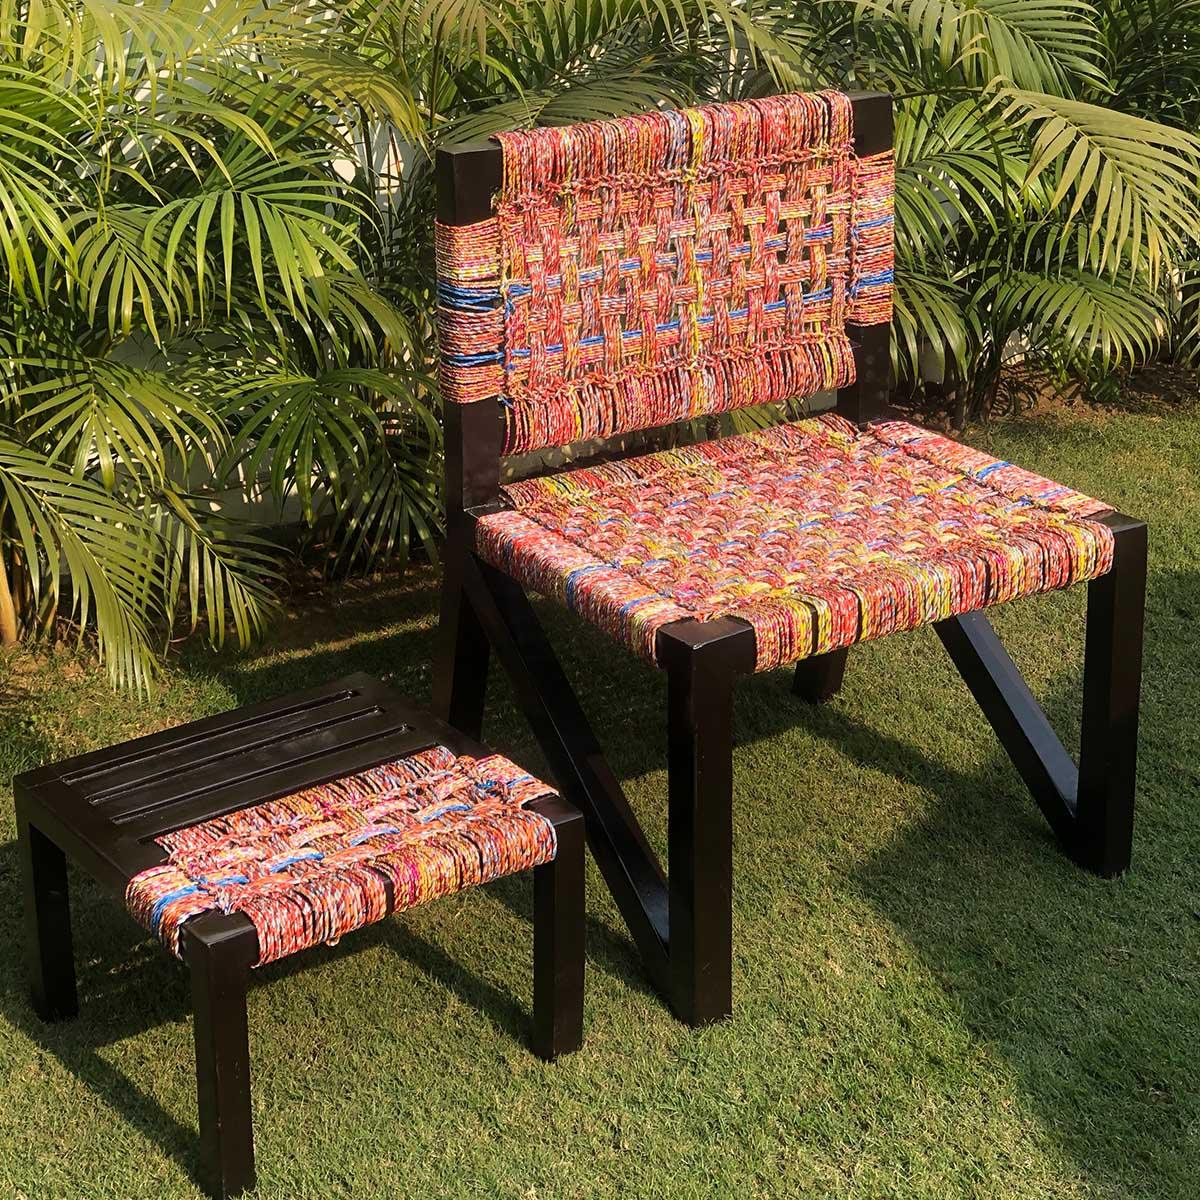 Repose Upcycled Plastic Chair & Table Set